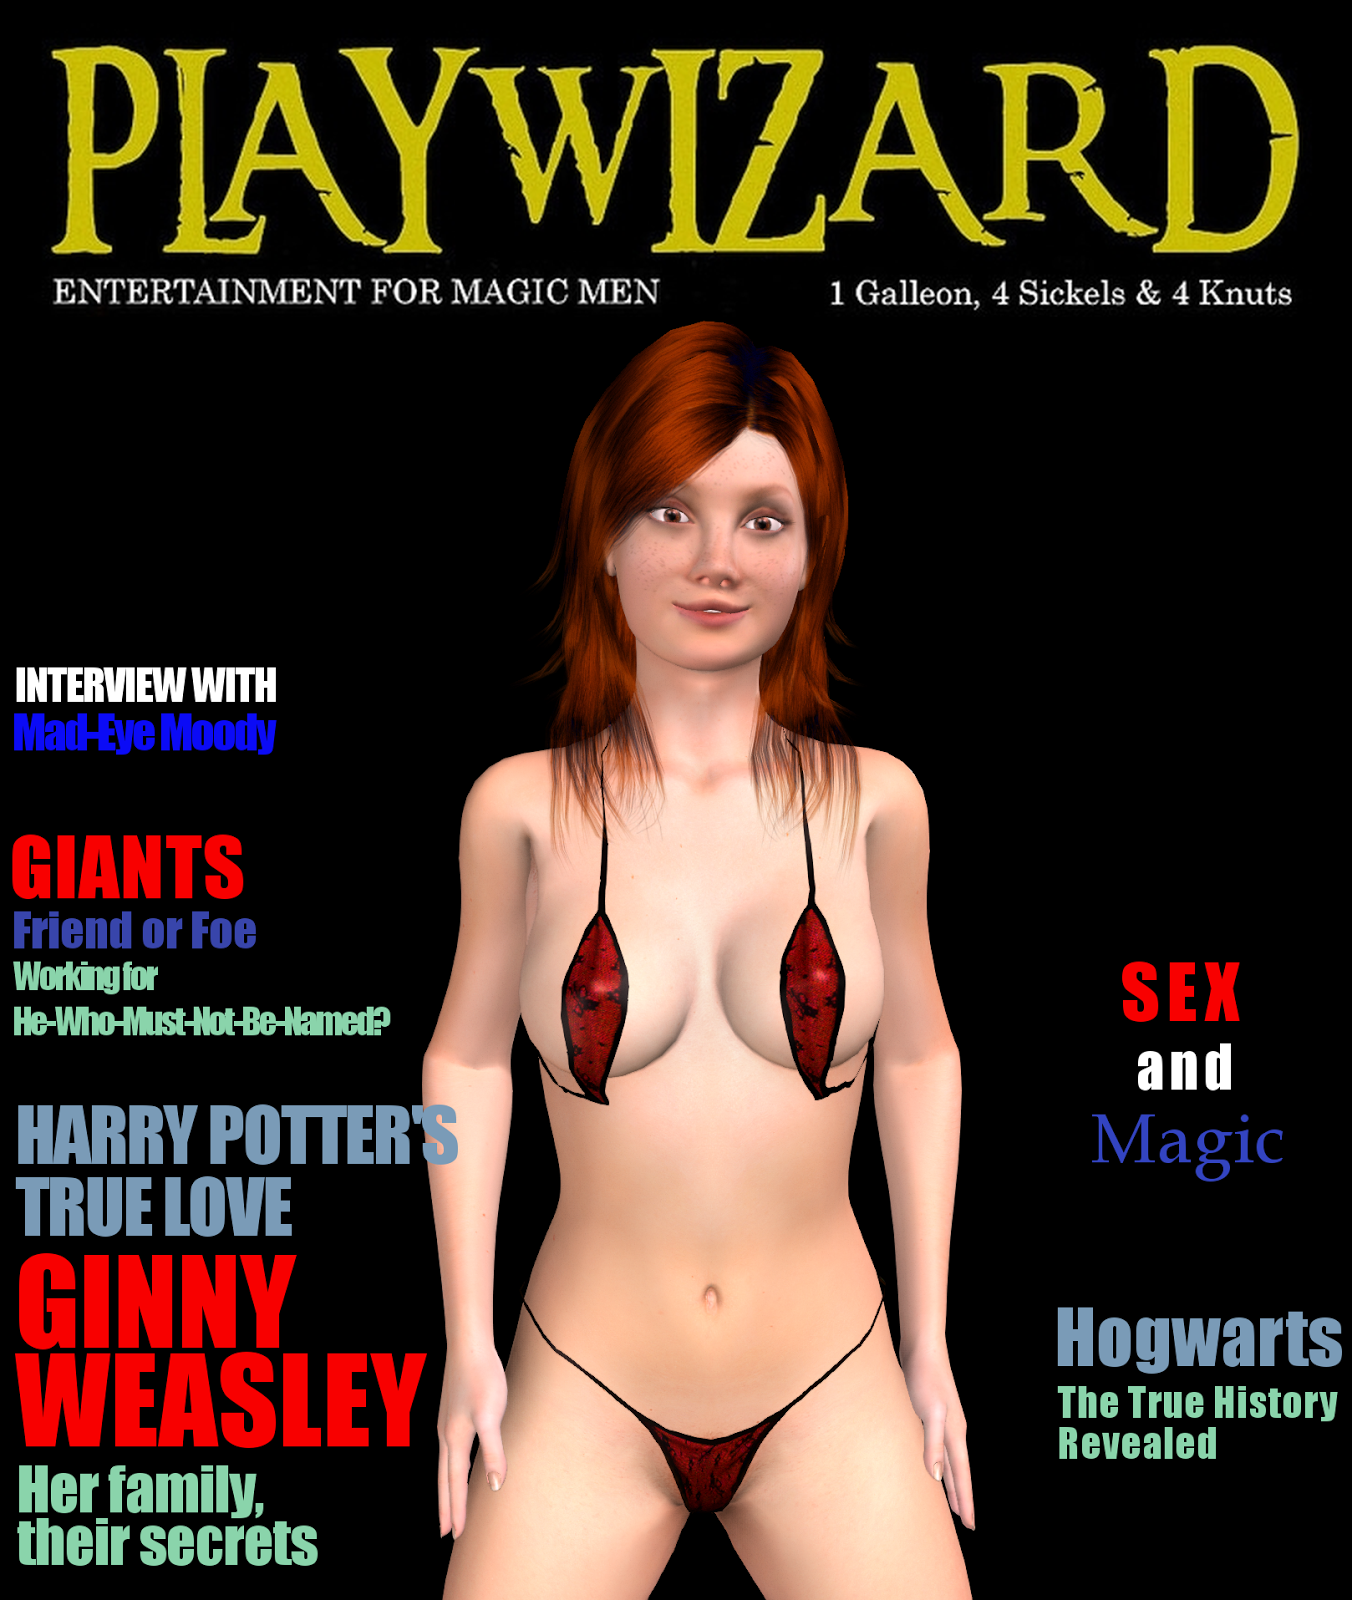 Harry Potter Sexy Animated 3D Porn Pics And Videos -2470